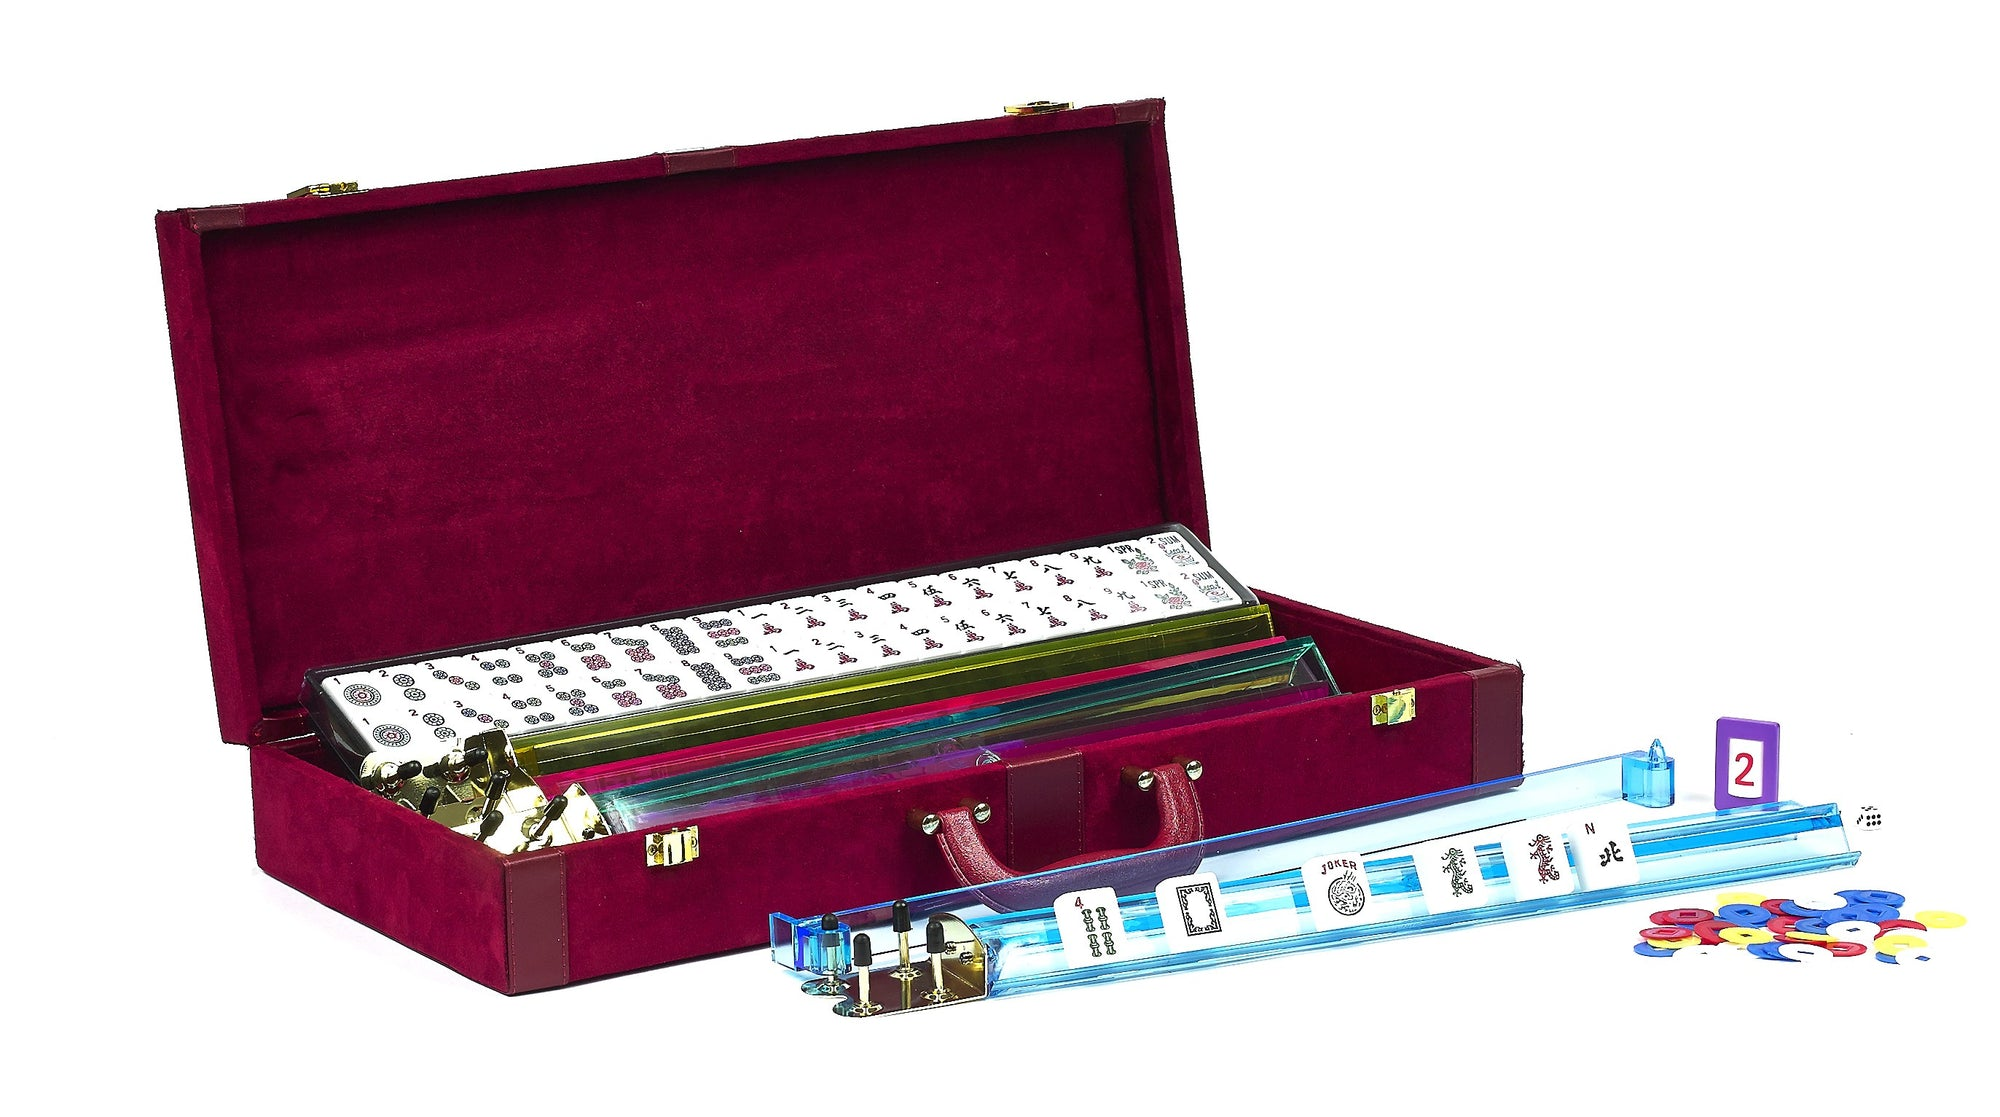 Deluxe American Mah-Jong Set with Velour case and leatherette trim